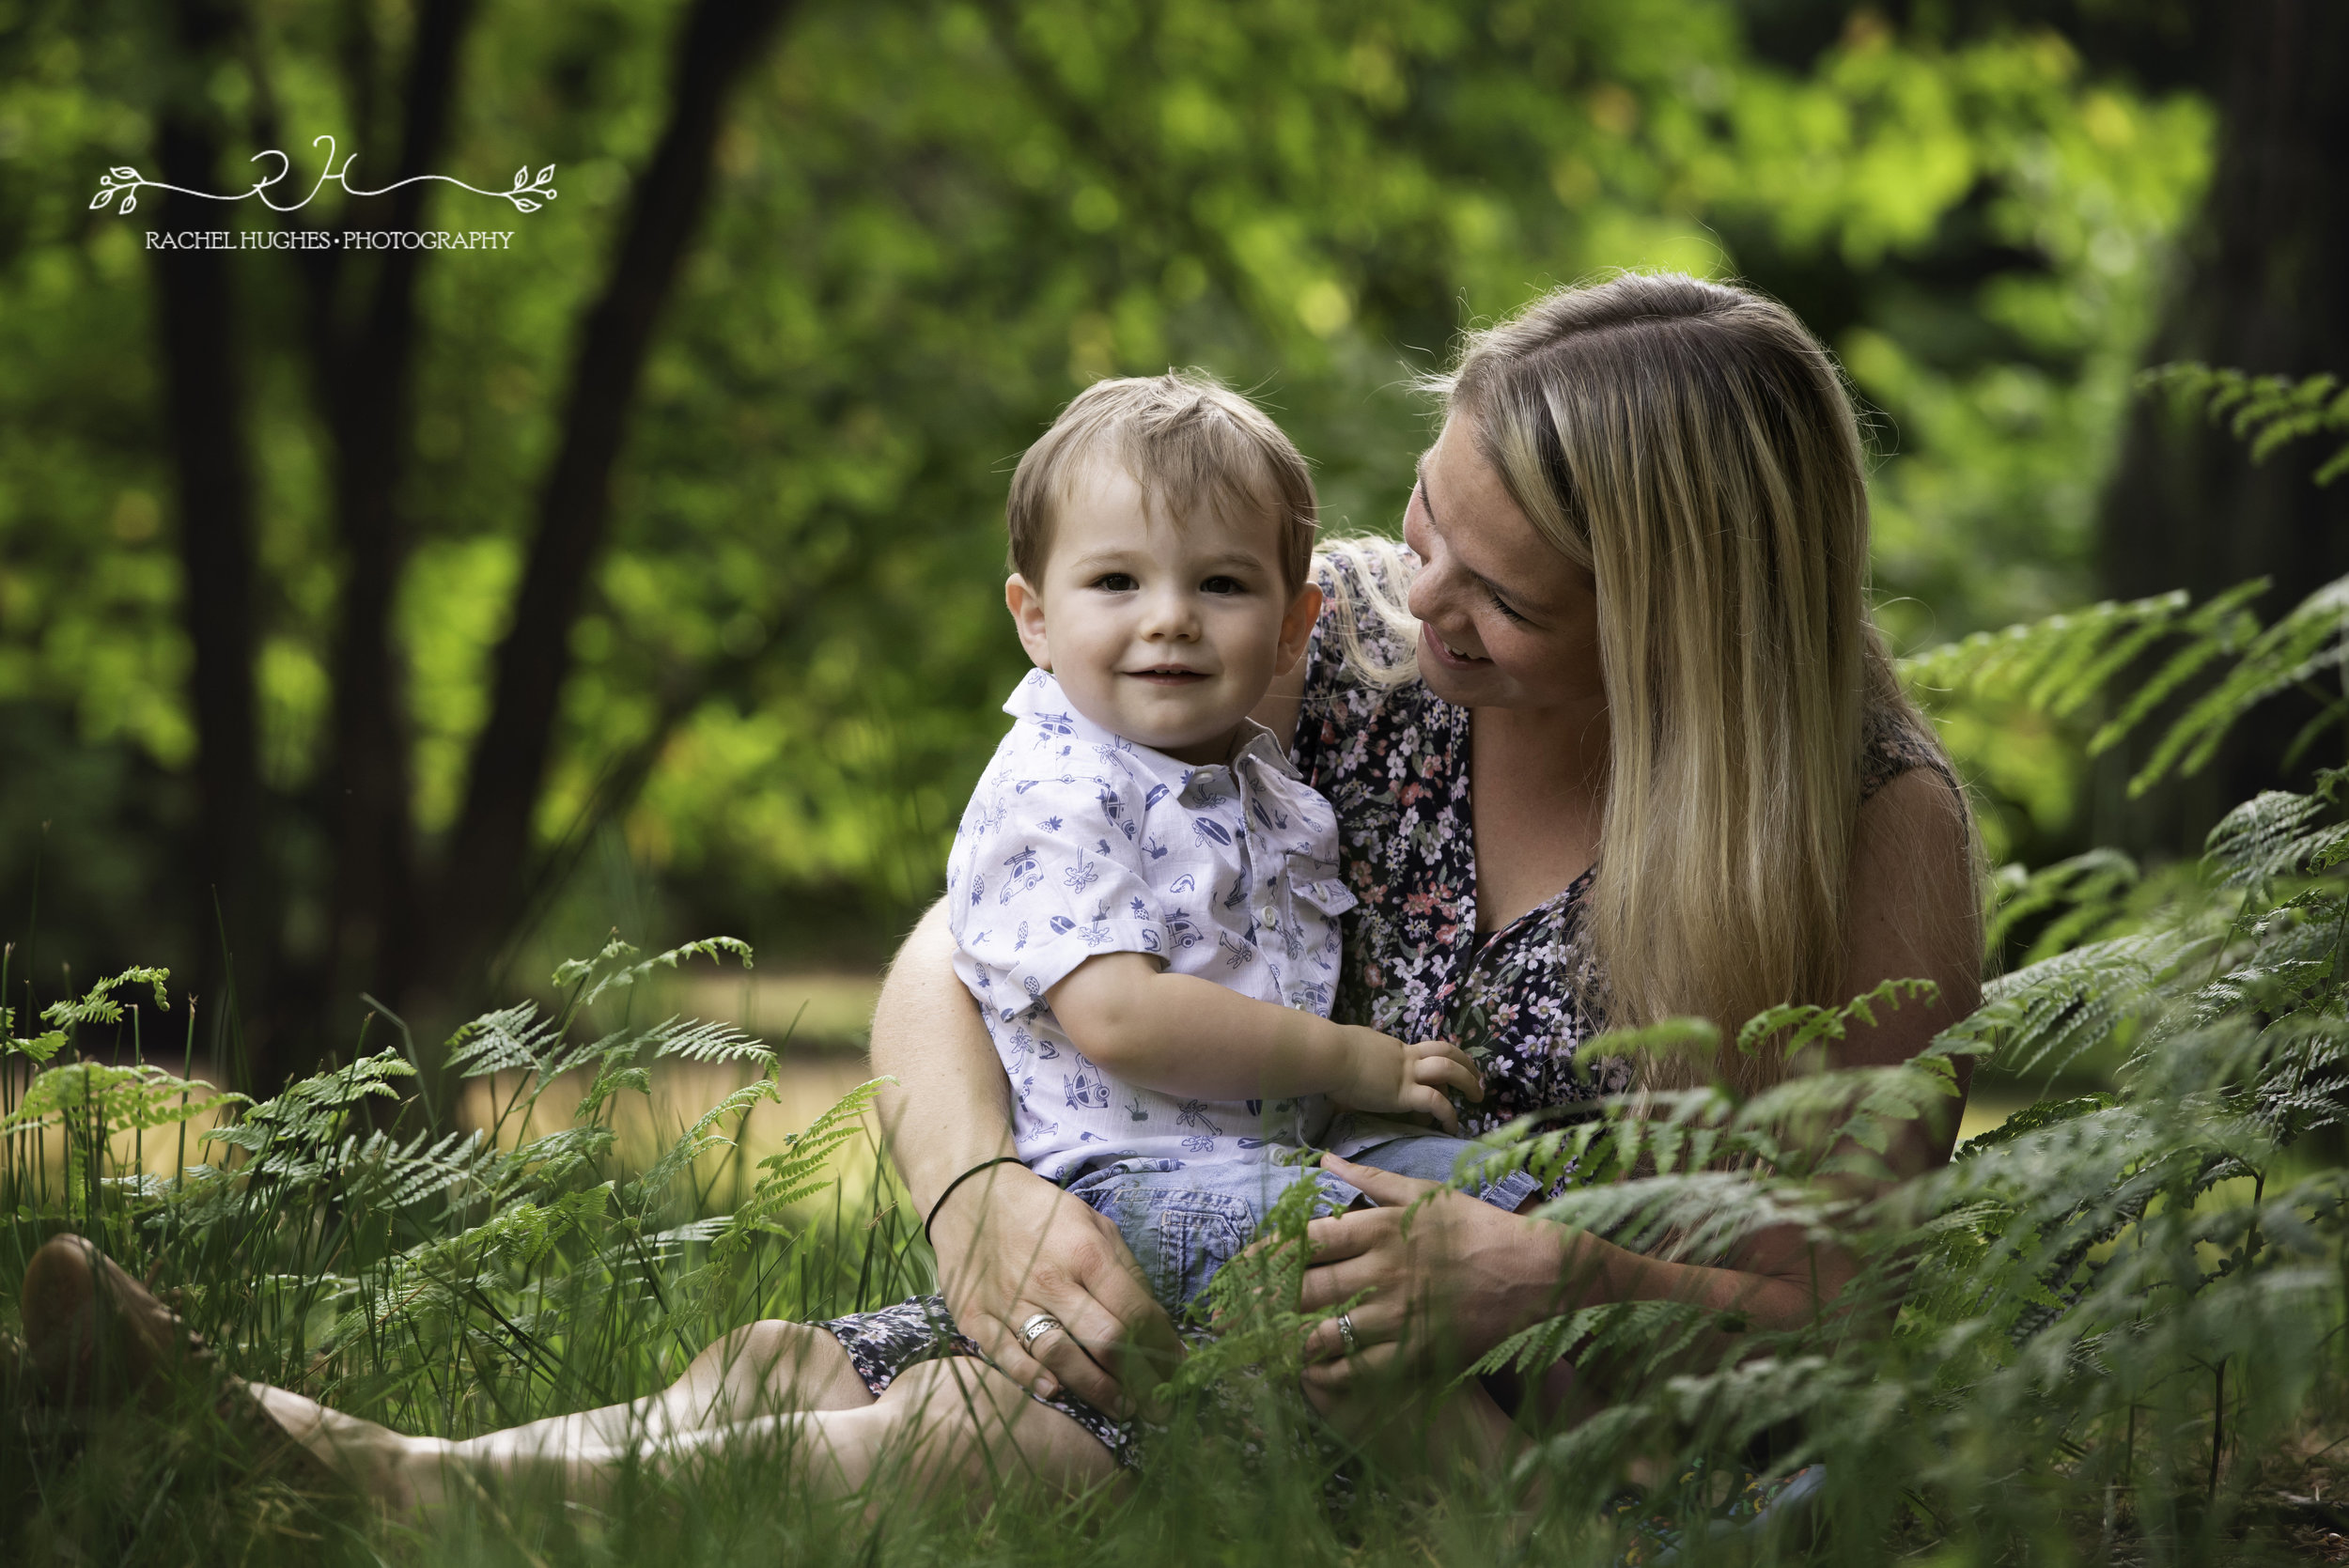 Jersey photographer: Mother's Day gift idea for photoshoot